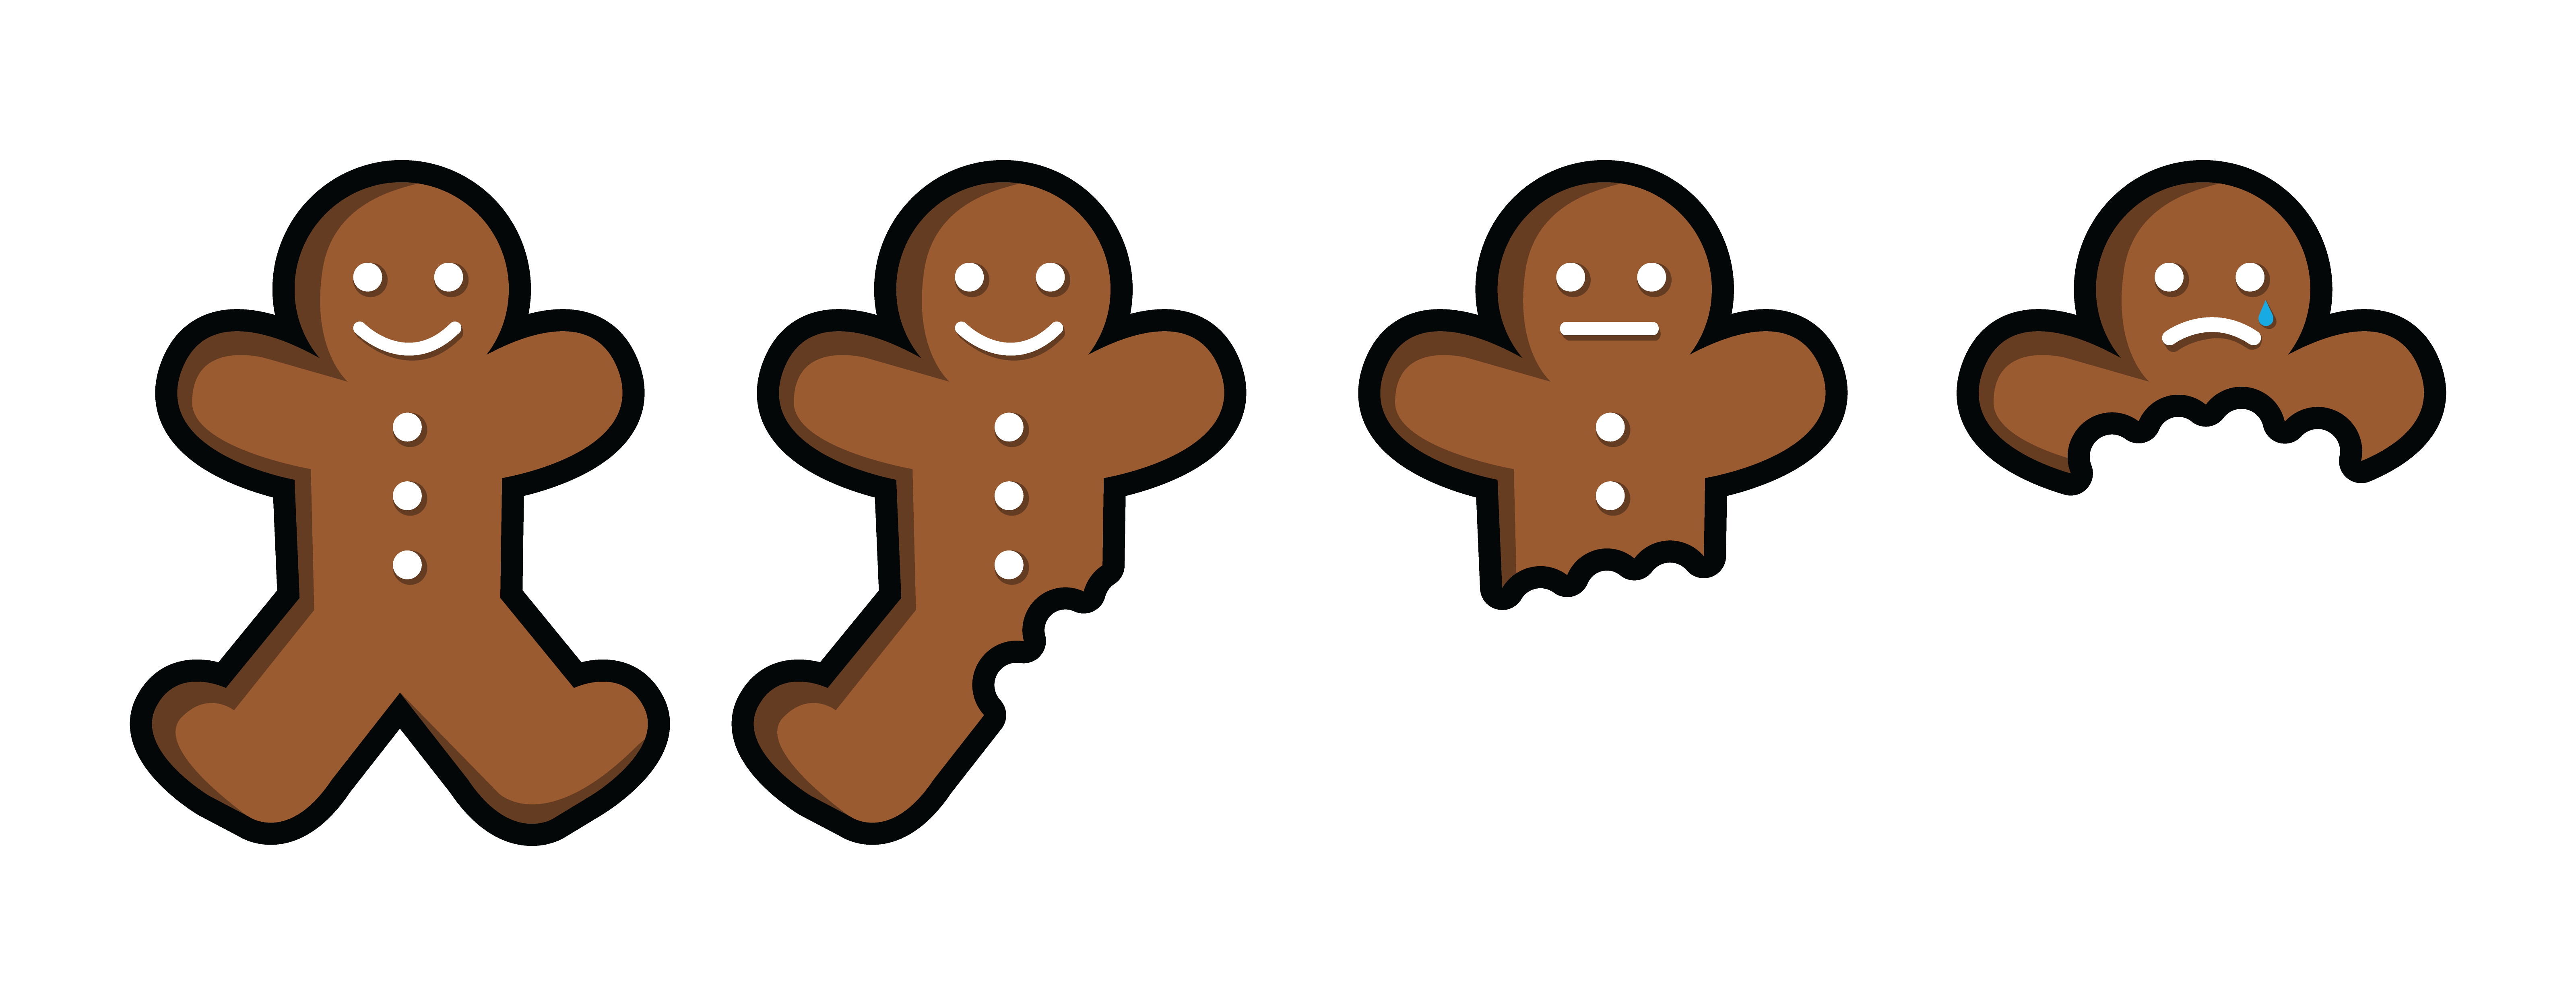 Ginger bread picture free. Gingerbread clipart eaten